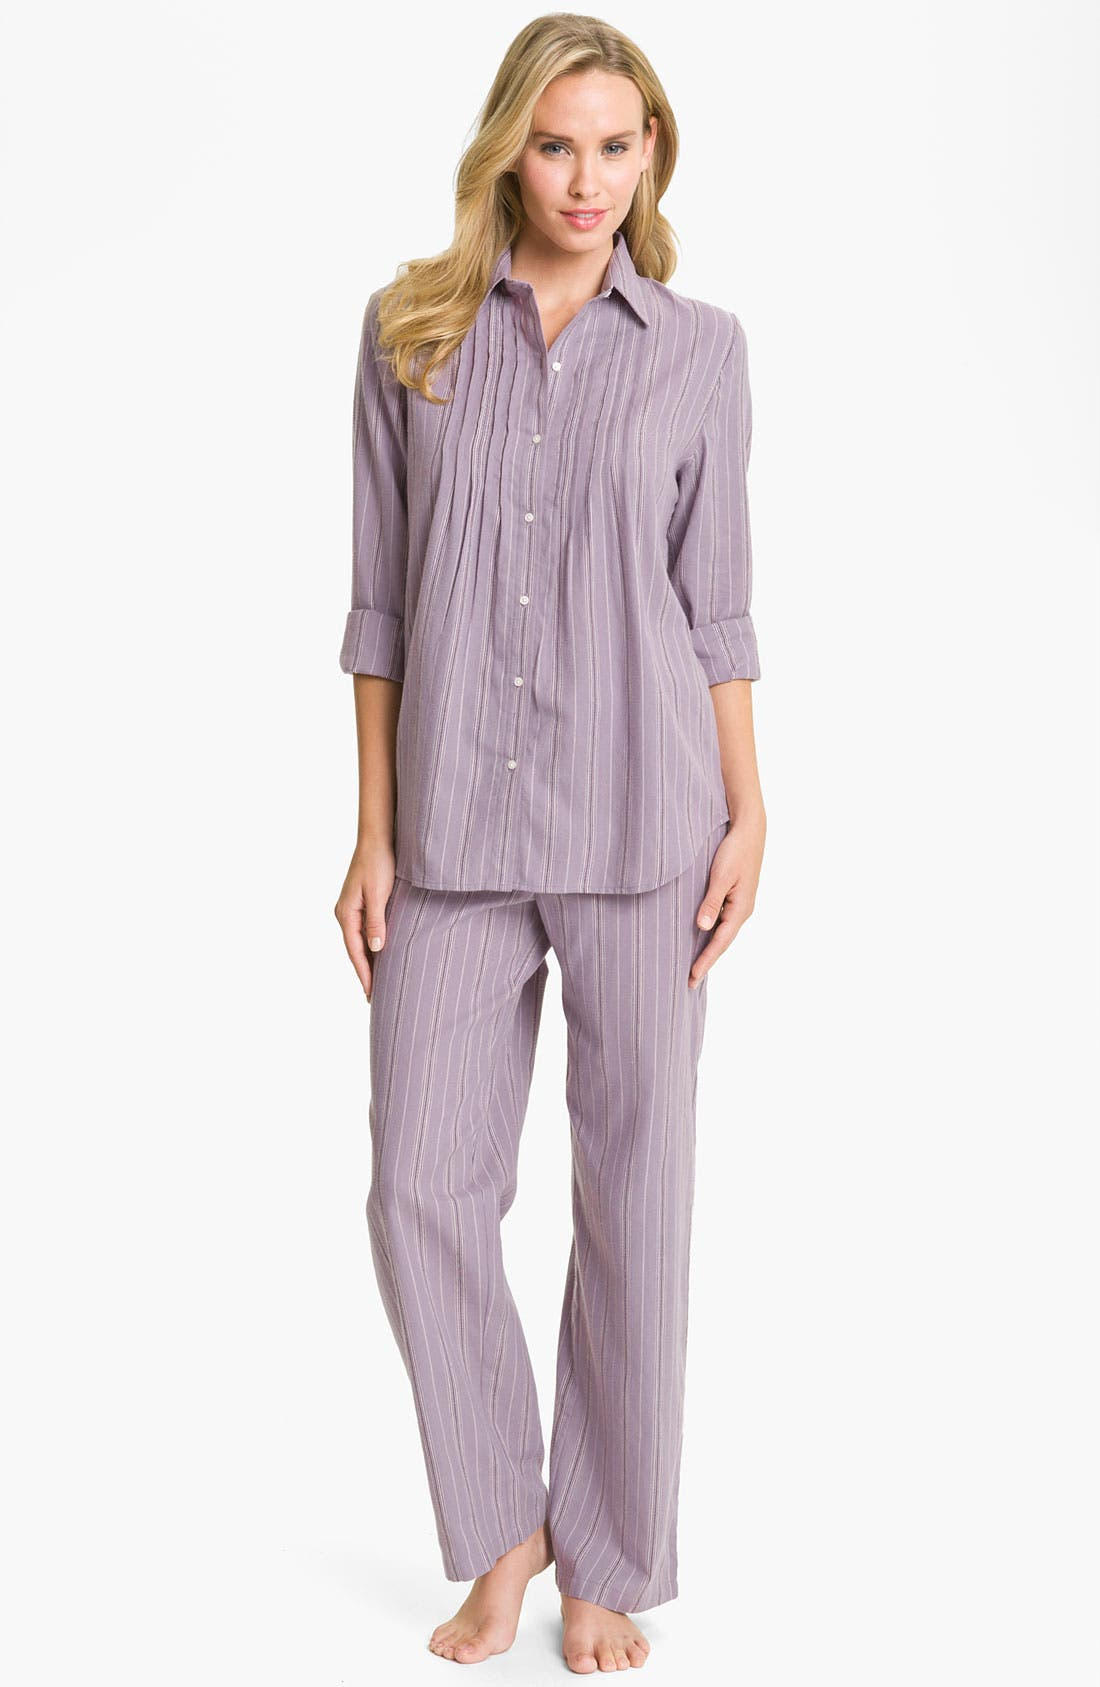 Alternate Image 1 Selected - Lauren Ralph Lauren Sleepwear Brushed Twill Pajamas